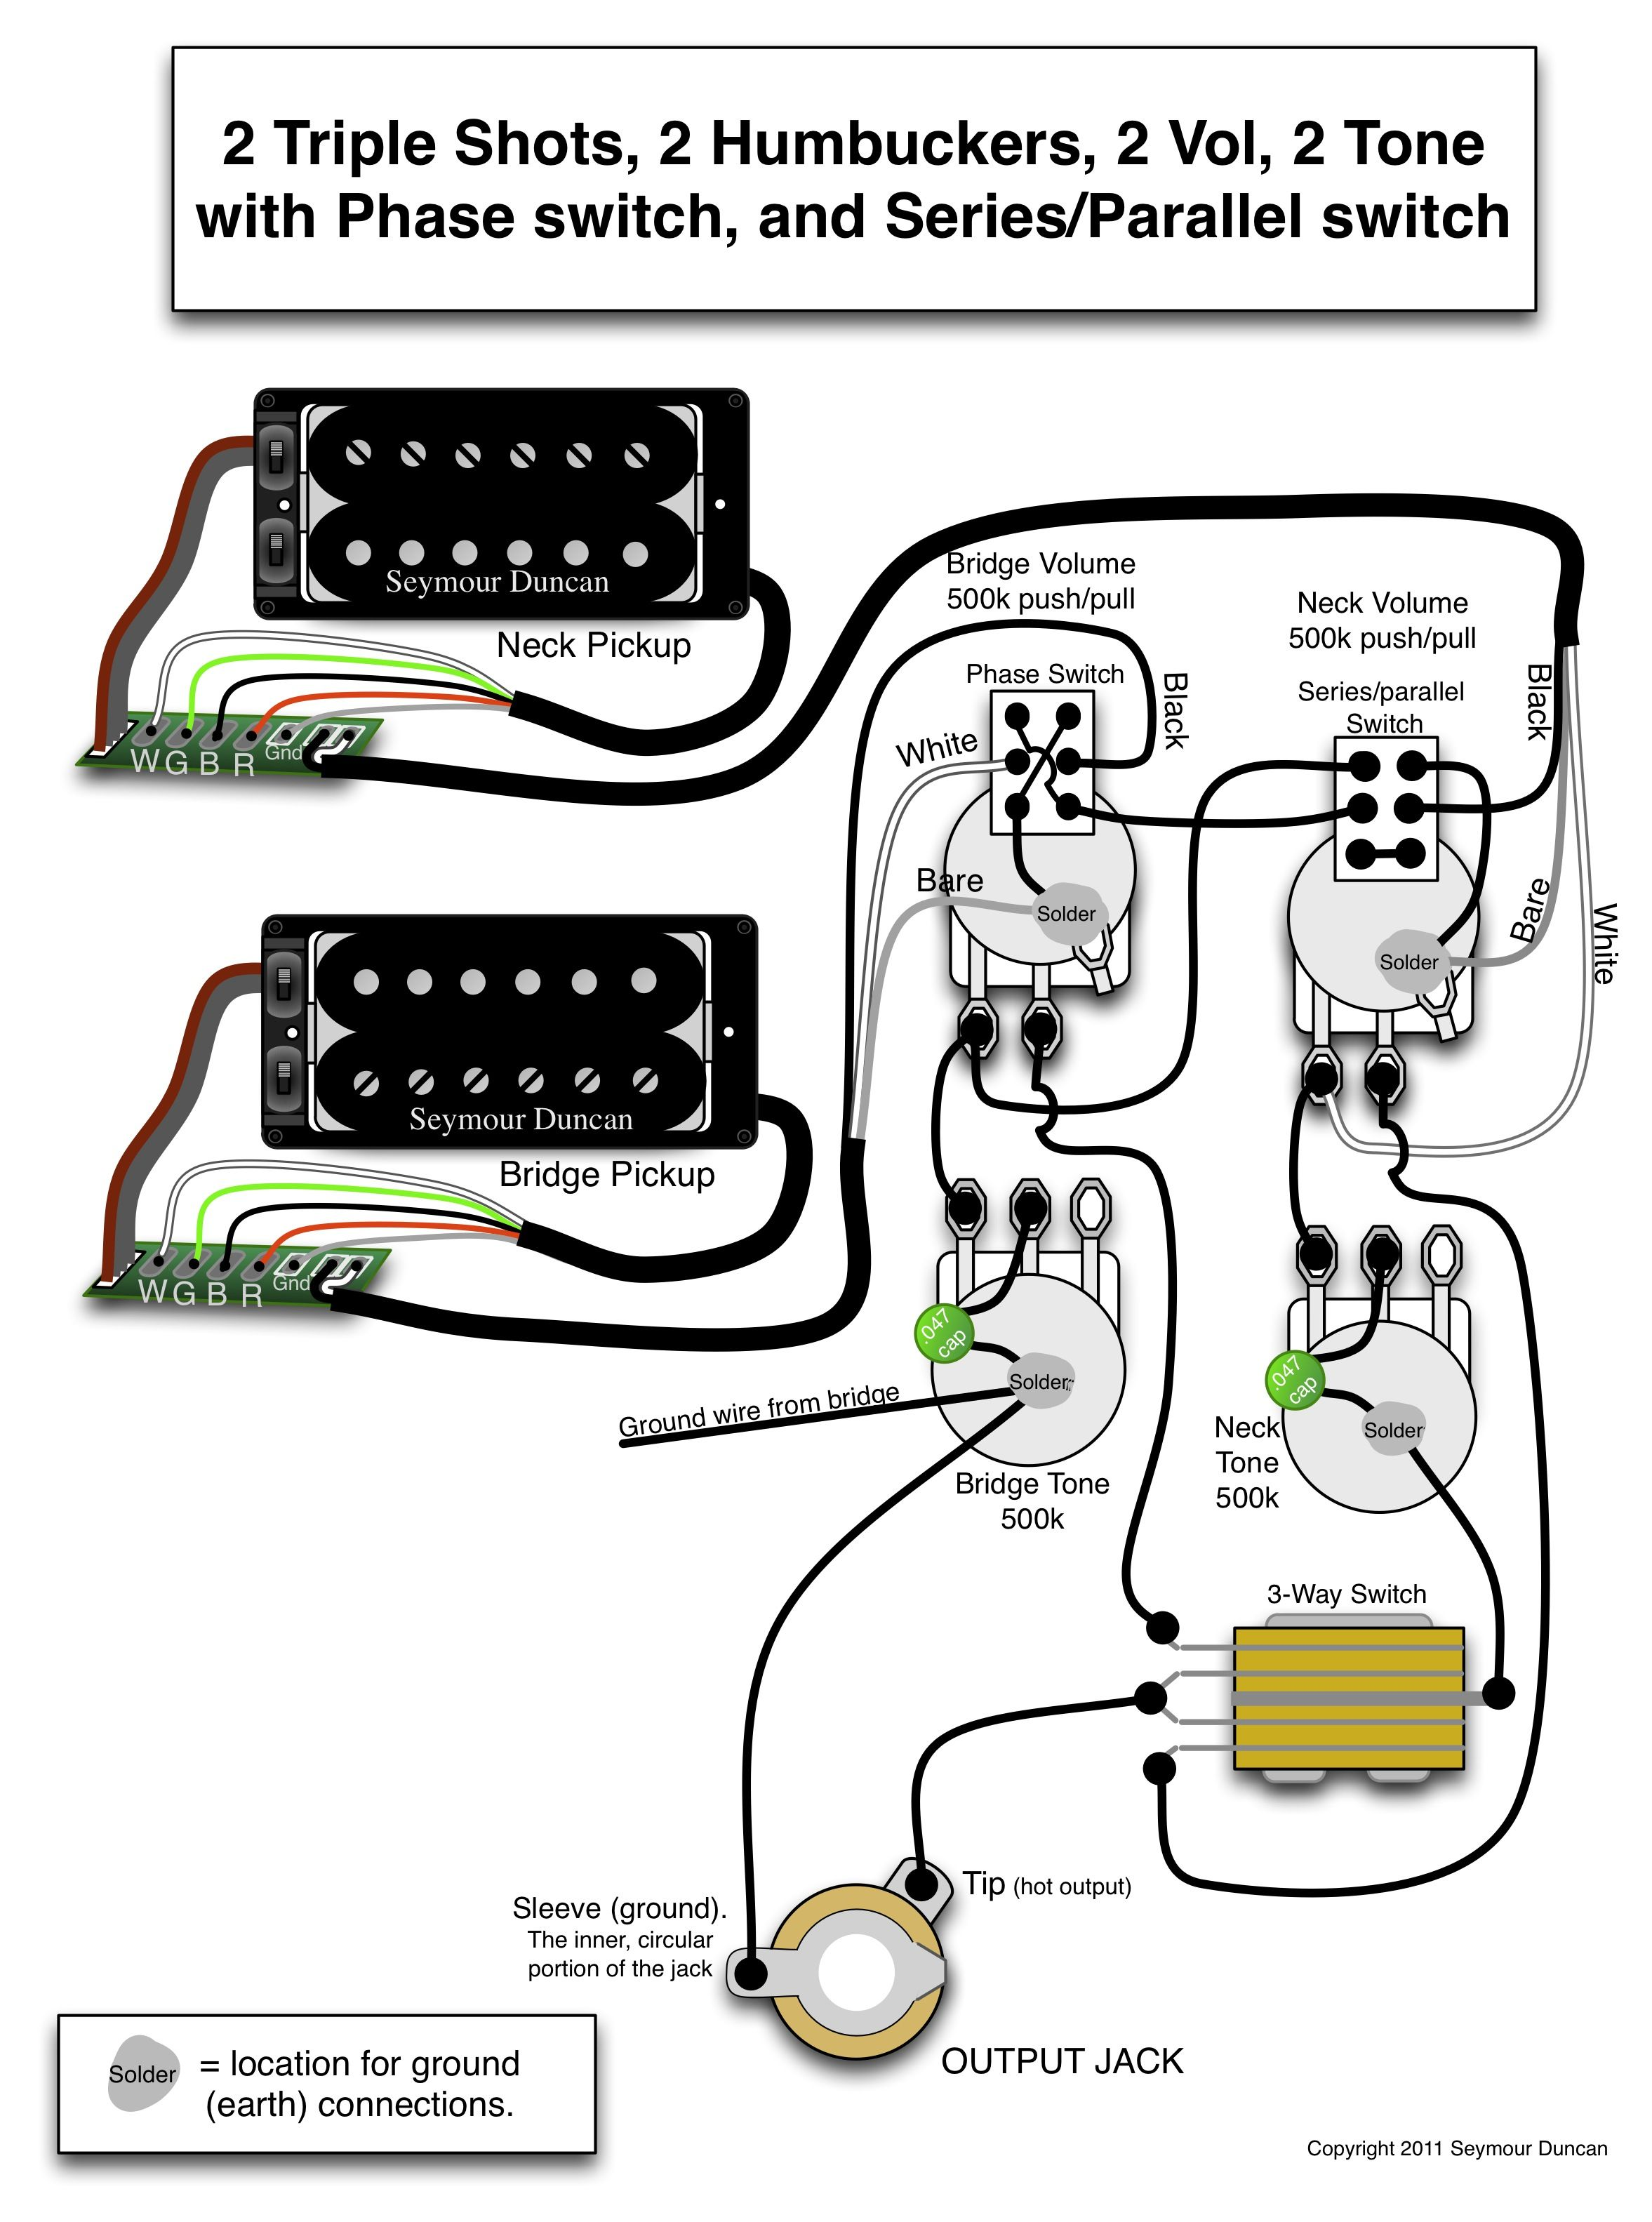 14dc4408abcf3c075a00cd280c1ea7ec seymour duncan wiring diagram 2 triple shots, 2 humbuckers, 2 duncan wiring diagrams at readyjetset.co